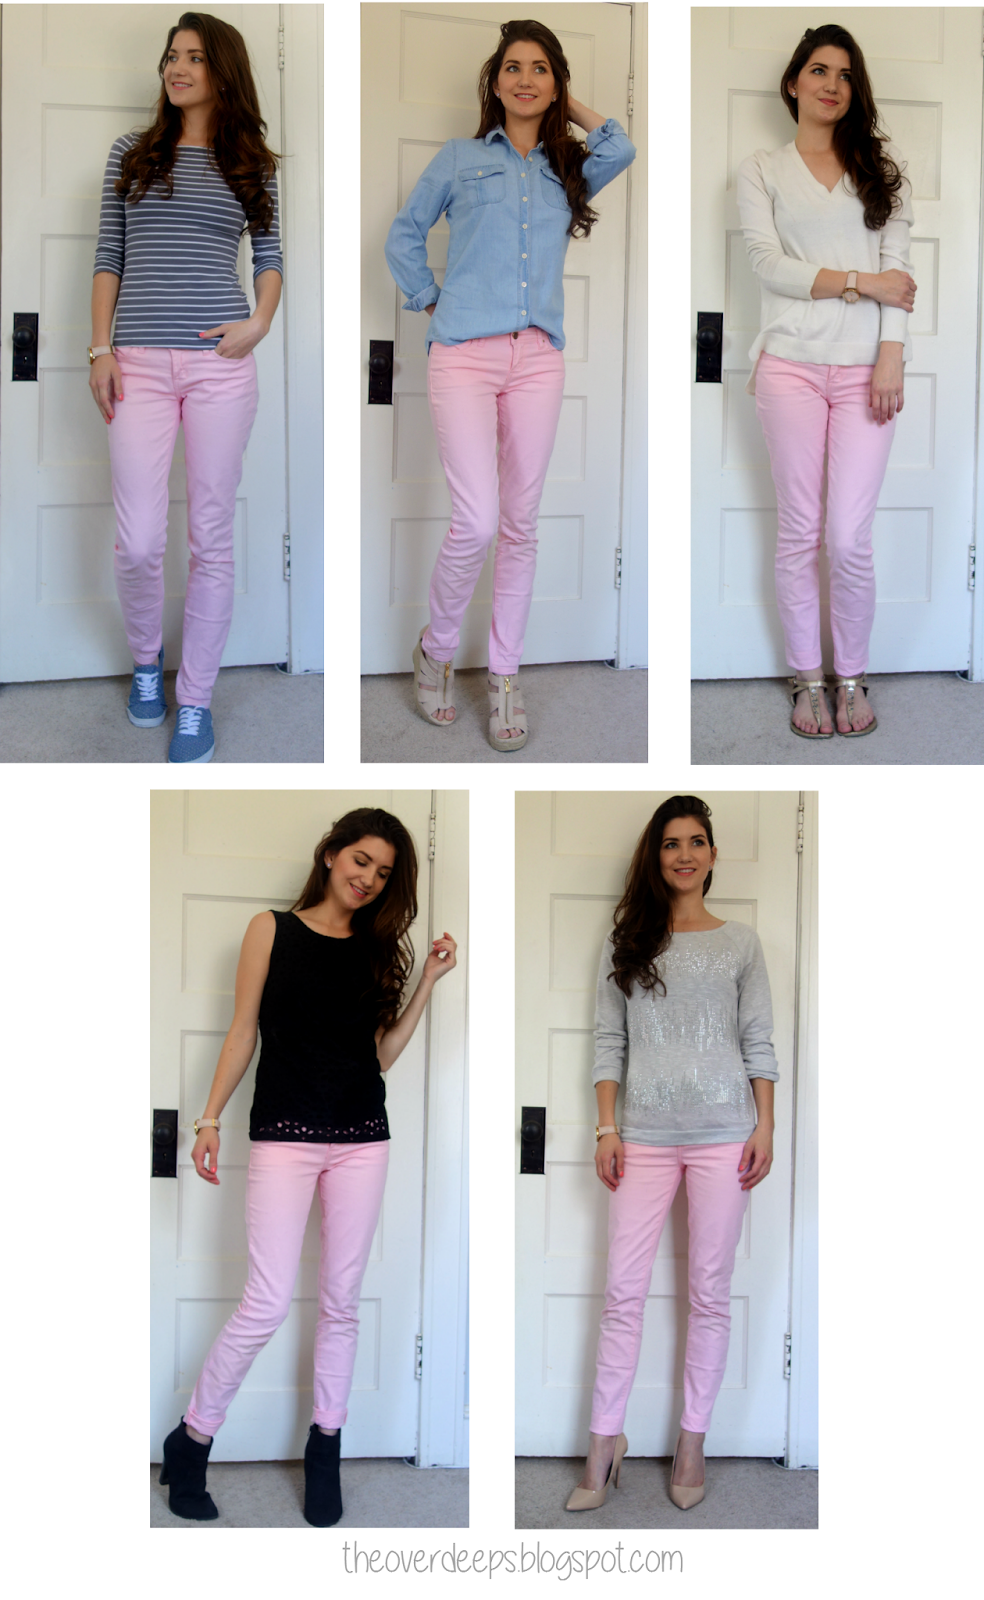 a496d567b299f I tried to choose similar articles of clothing I already owned. When my  pink jeans finally arrived